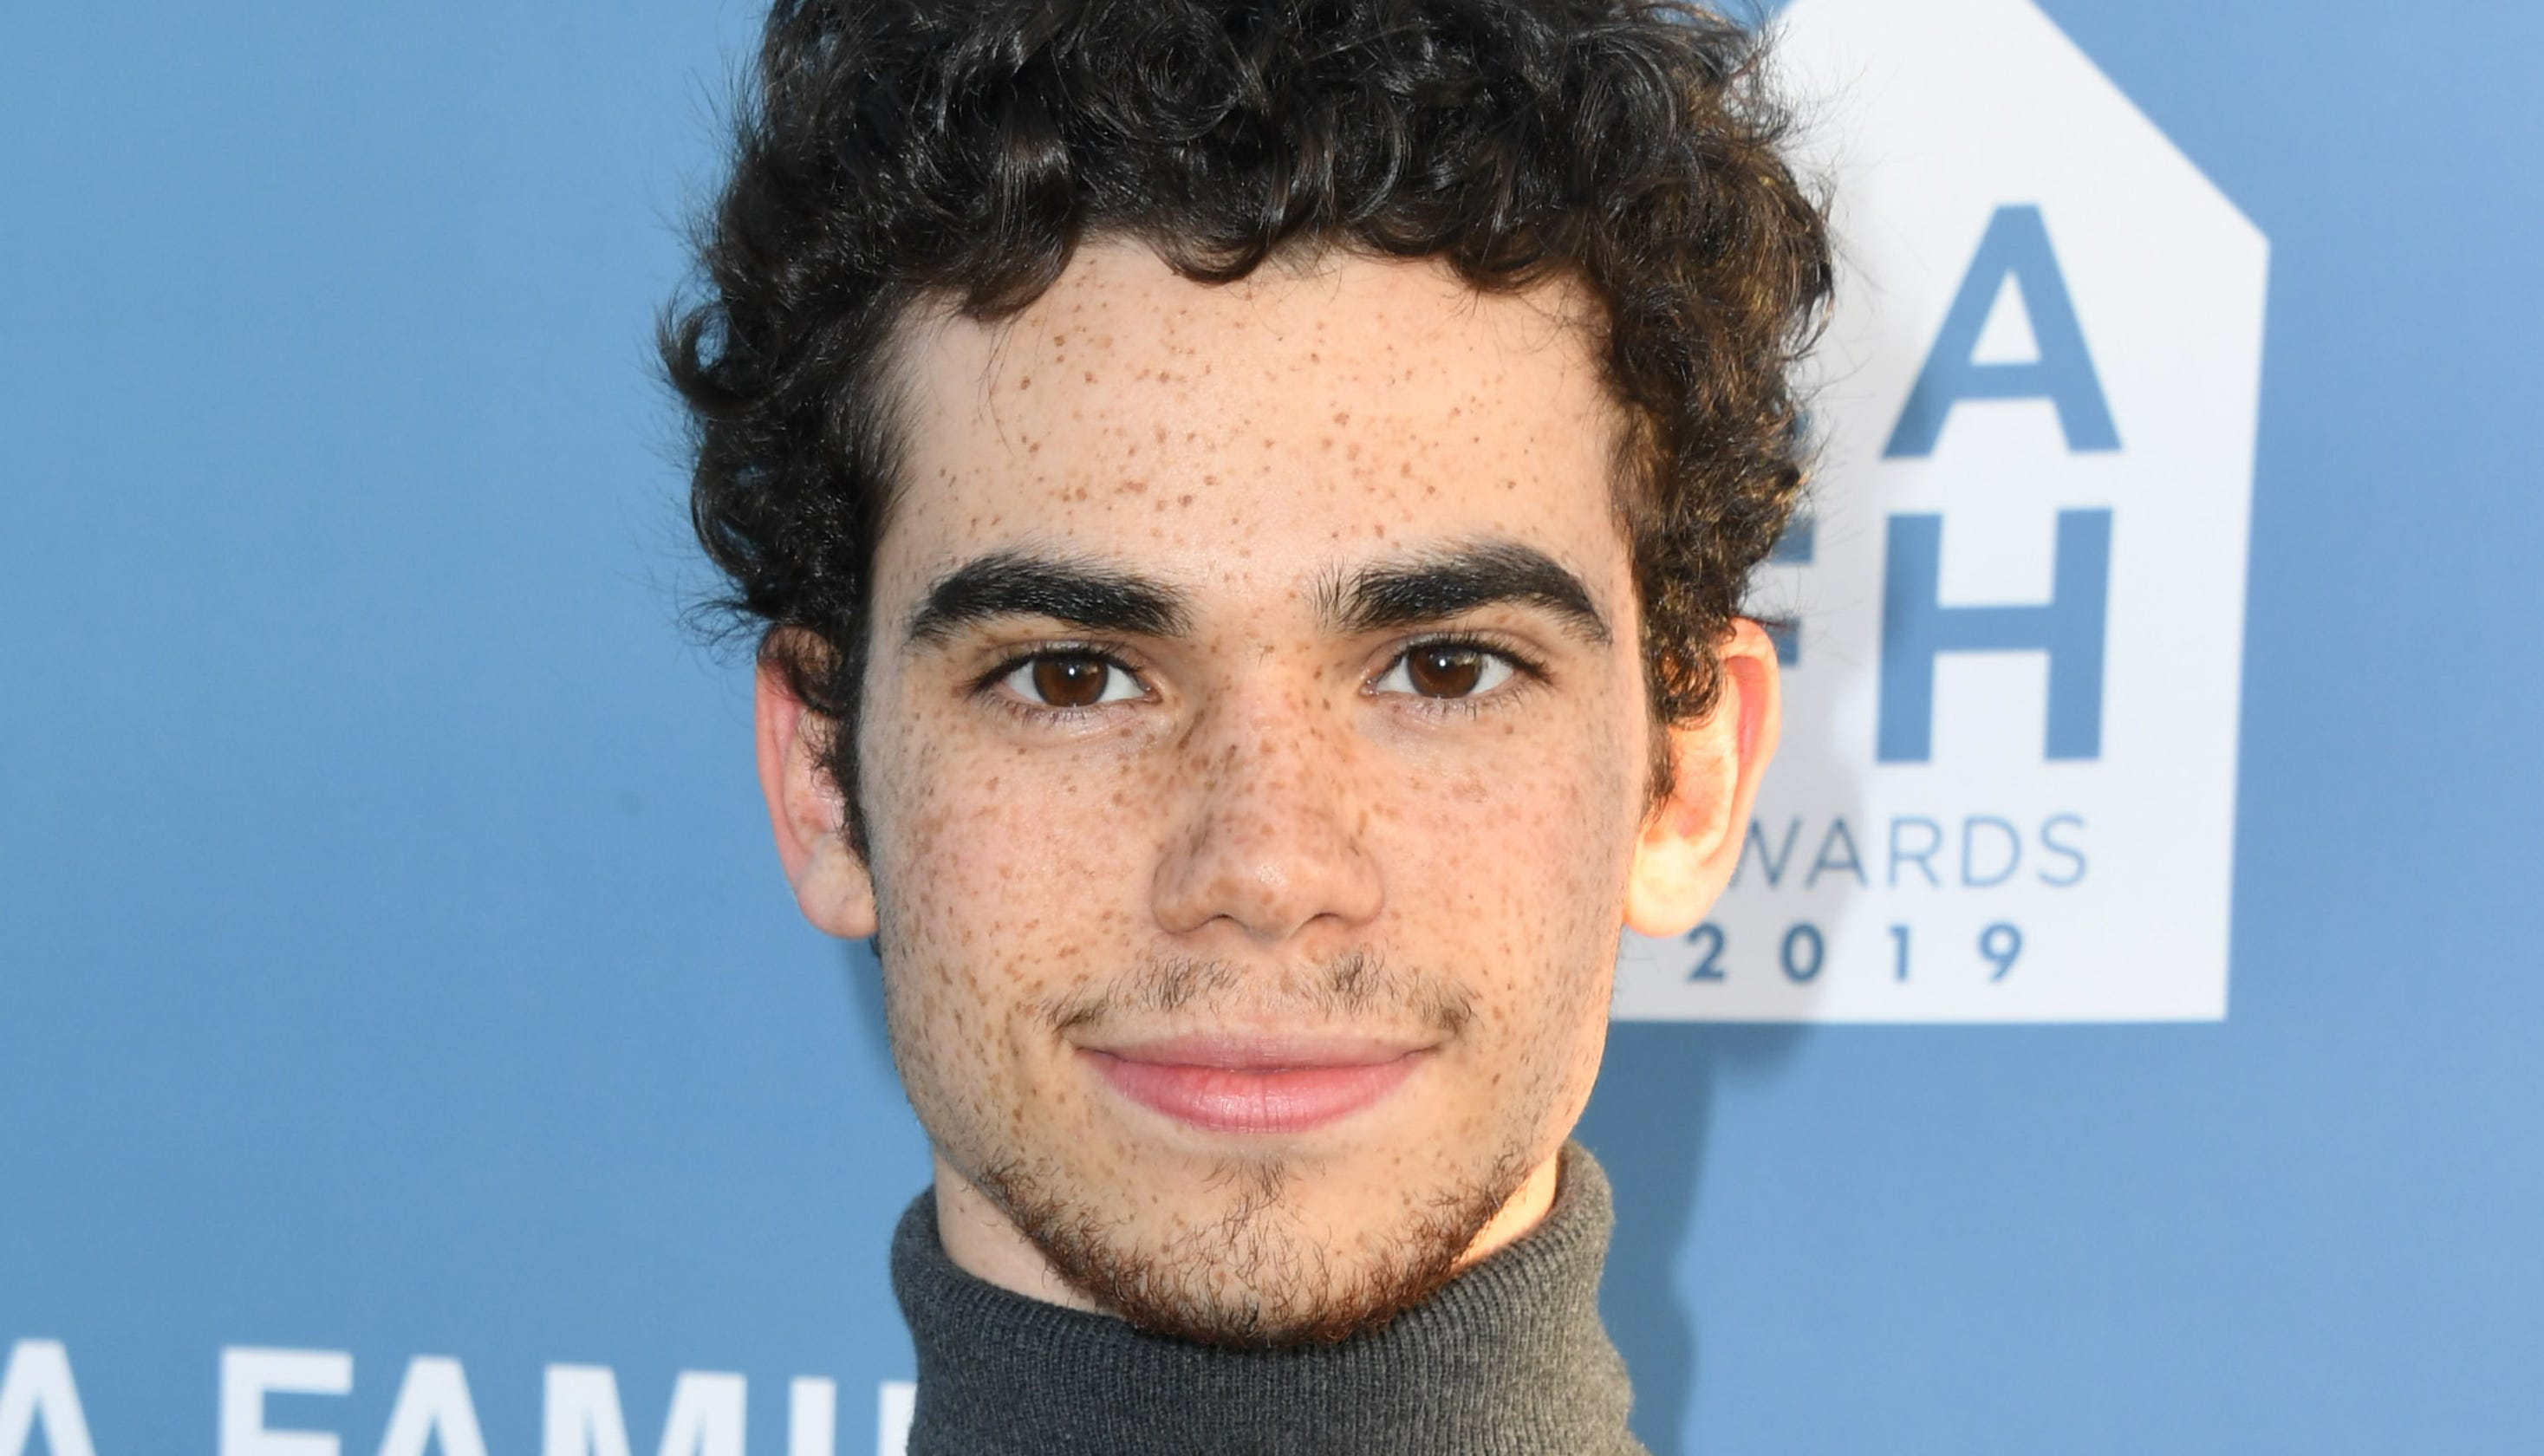 Cameron Boyce's cause of death deferred pending further